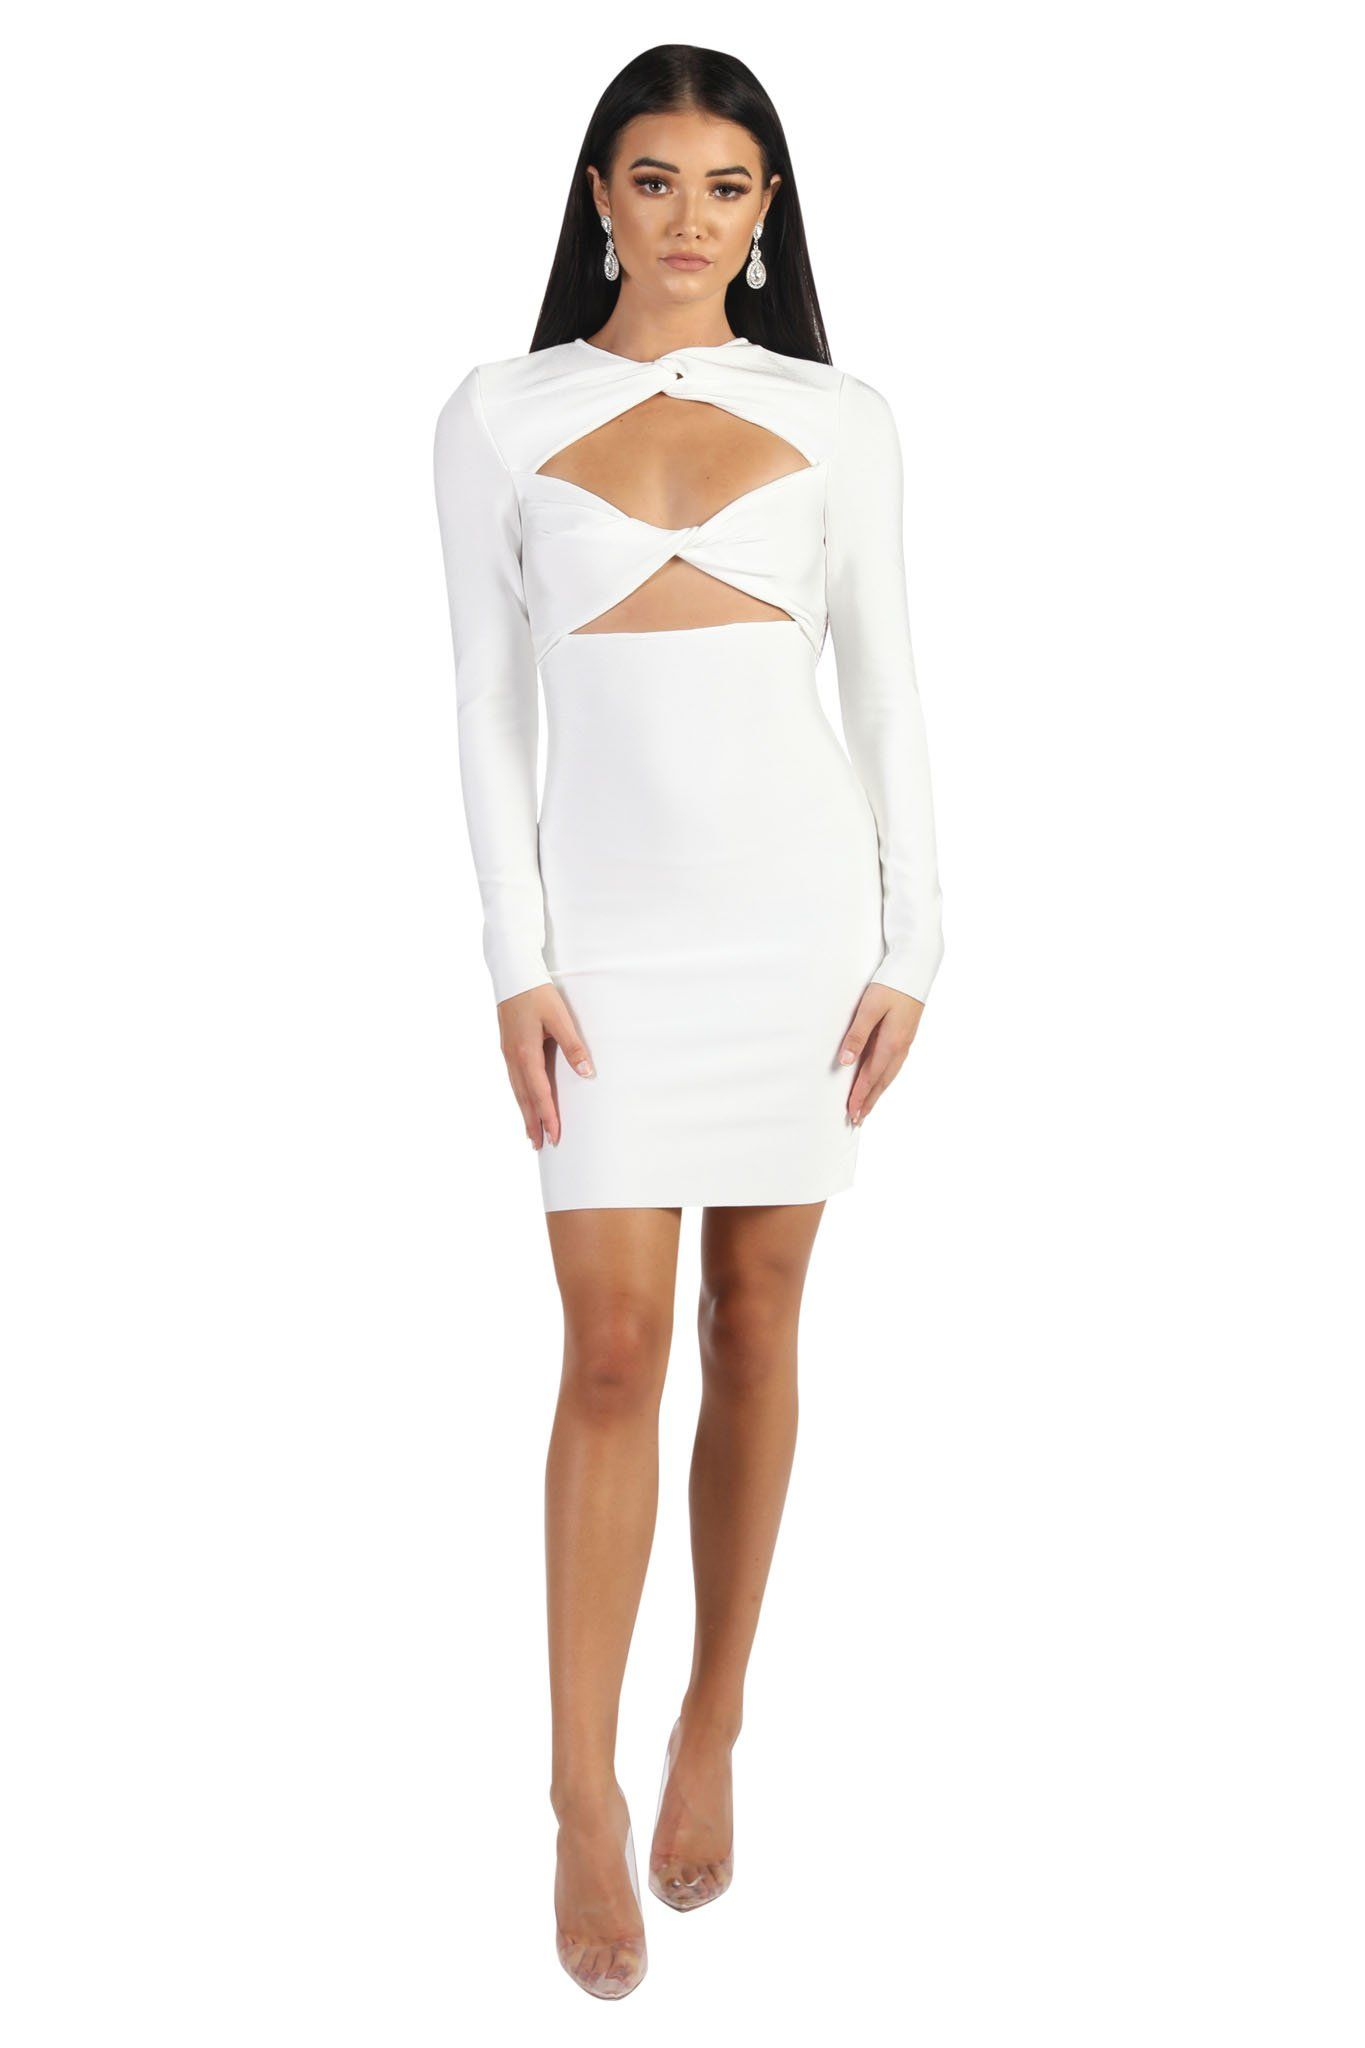 White mini bandage dress with midriff cutouts and long sleeves